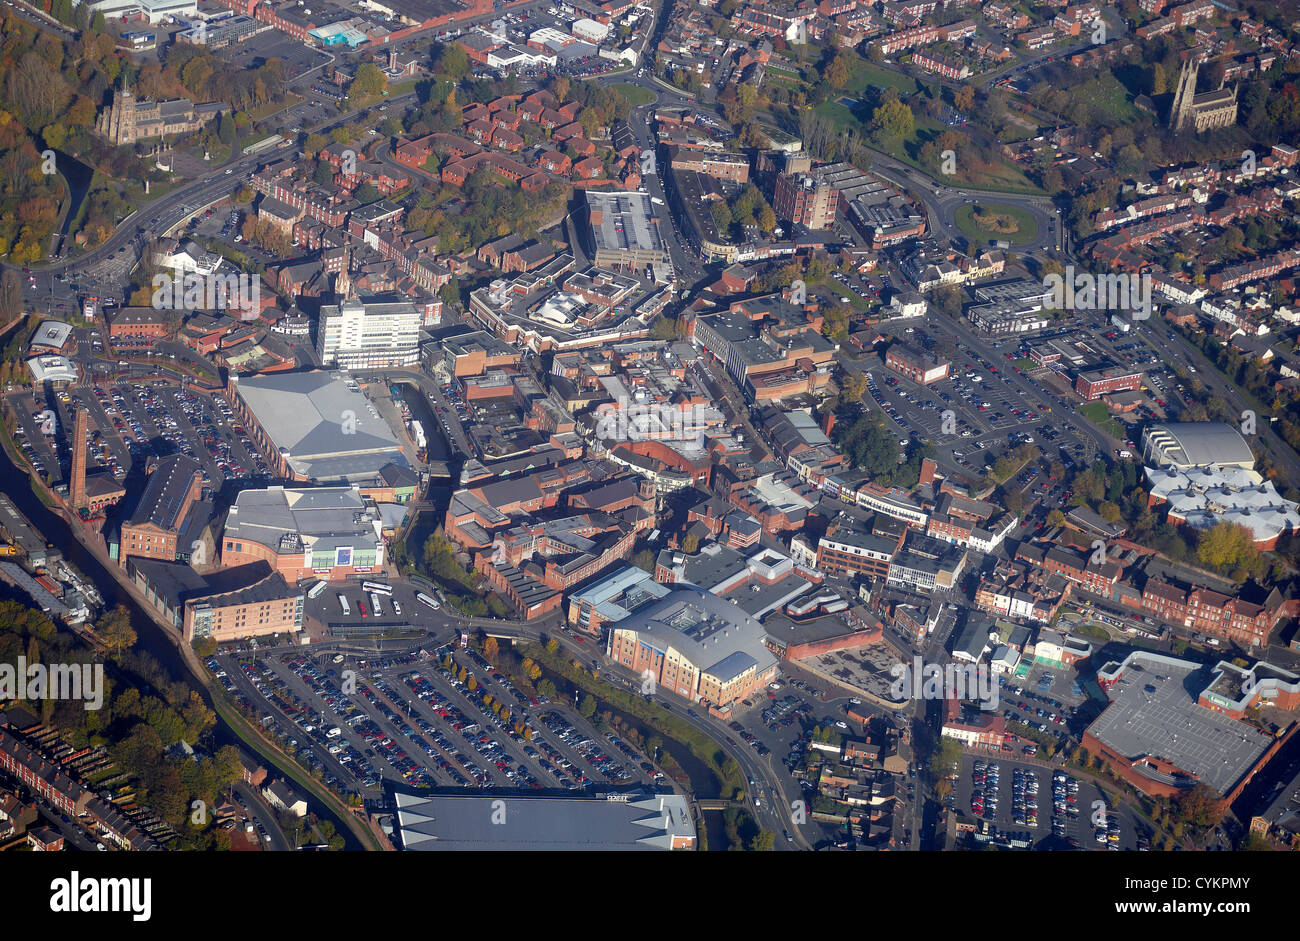 Kidderminster Town Centre from the air, West Midlands, England UK - Stock Image